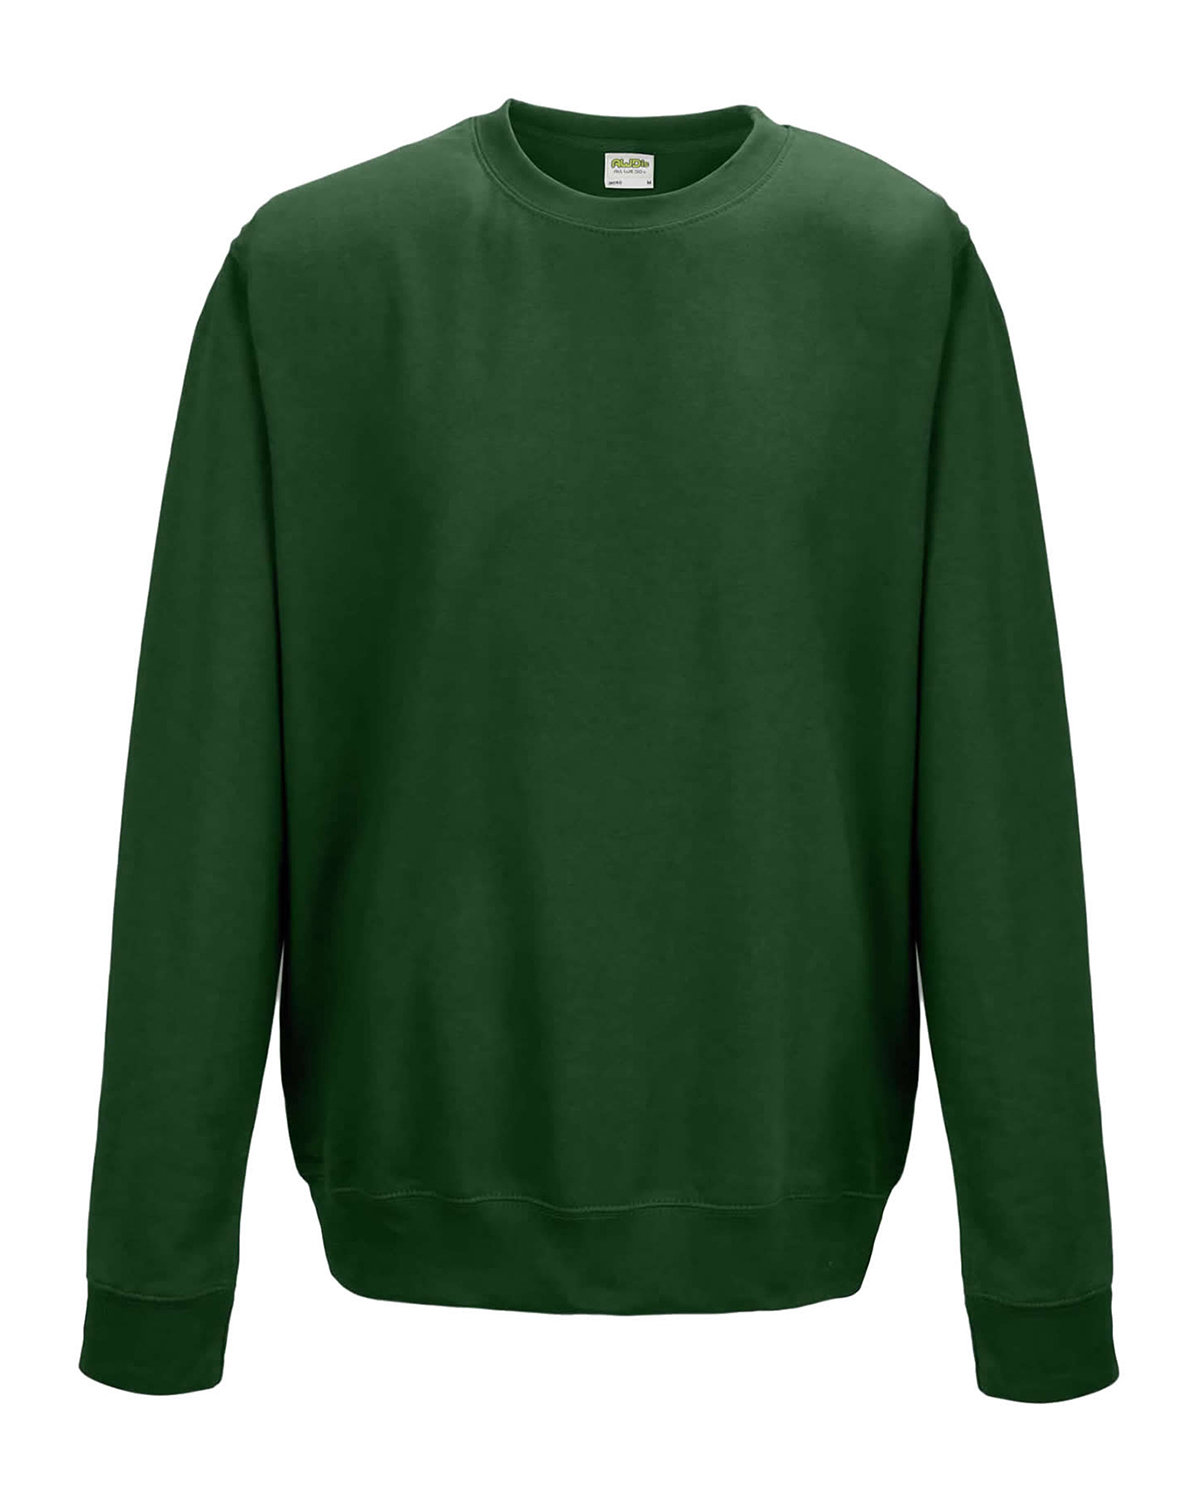 Just Hoods By AWDis Adult 80/20 Midweight College Crewneck Sweatshirt BOTTLE GREEN